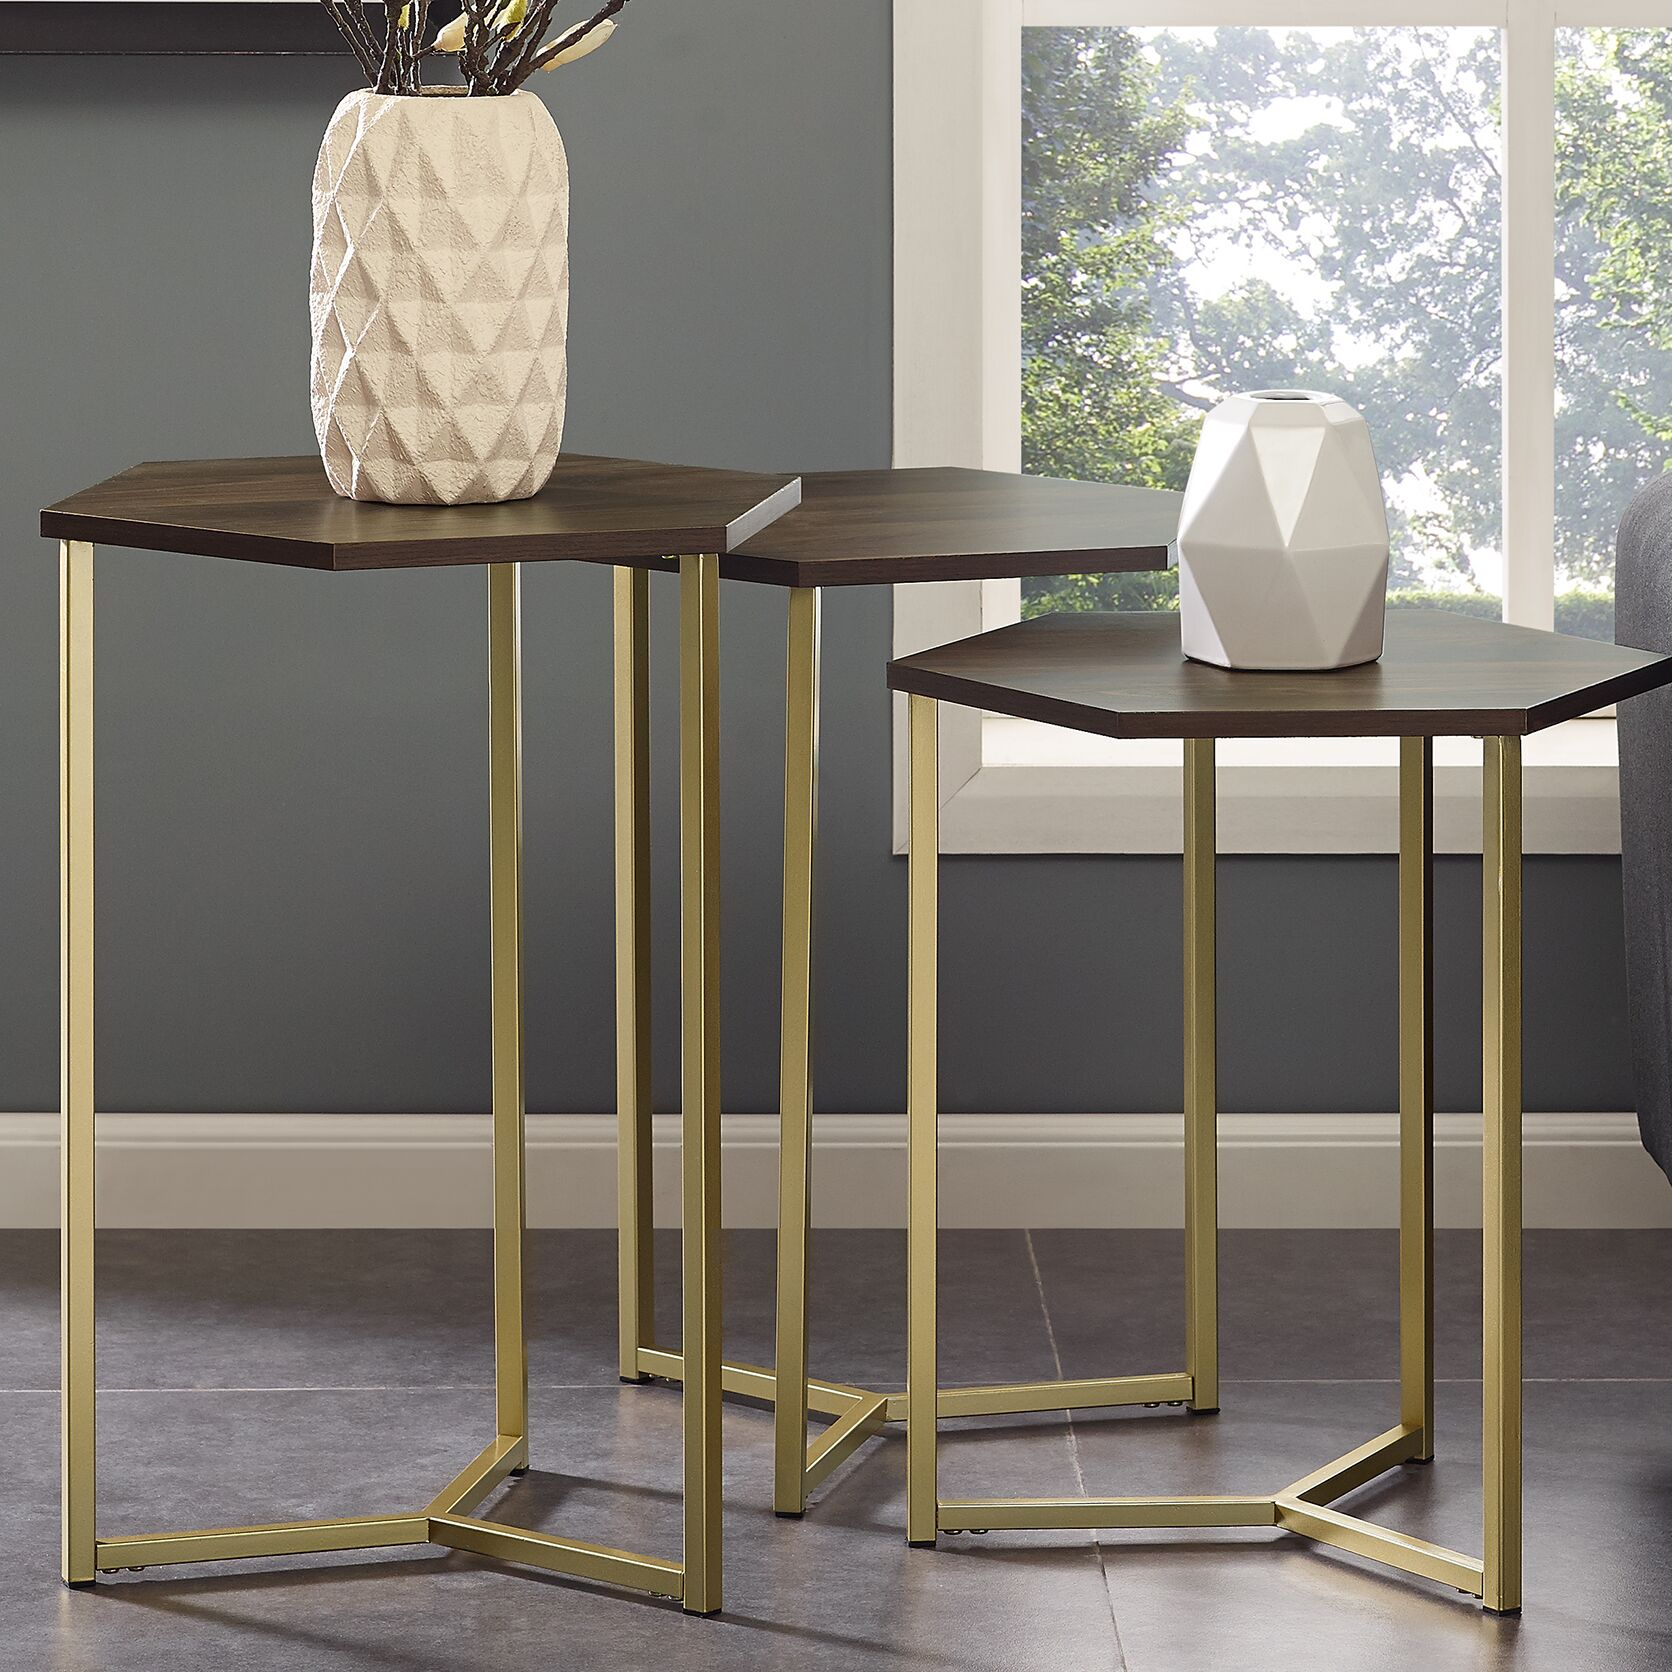 Byblos Hex 3 Piece Nesting Tables Color: Dark Walnut/Gold